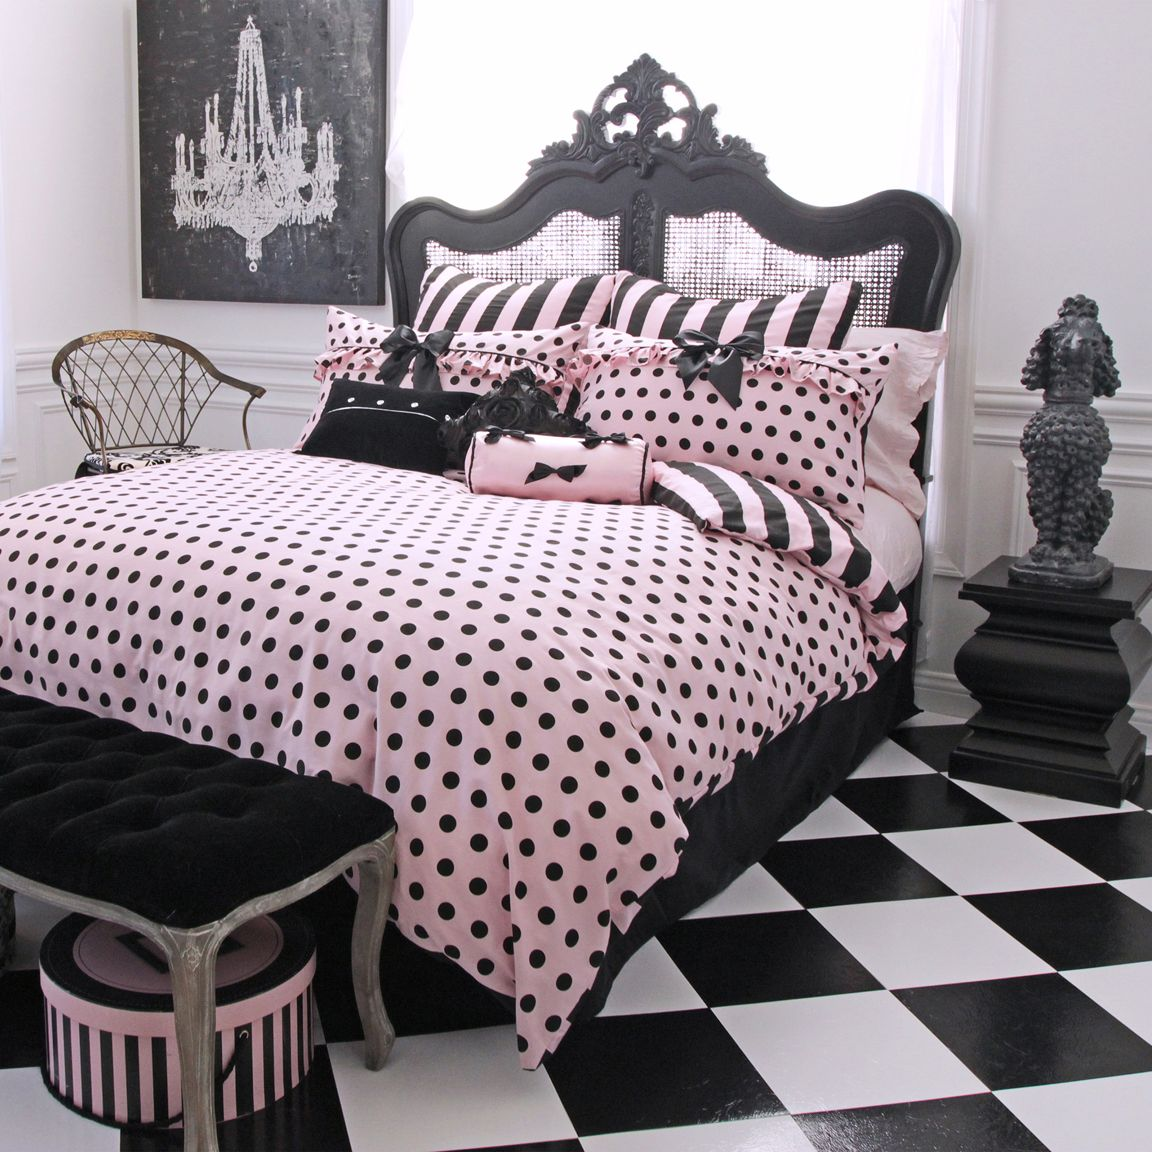 Polka Dot Girl Bedding Black And White